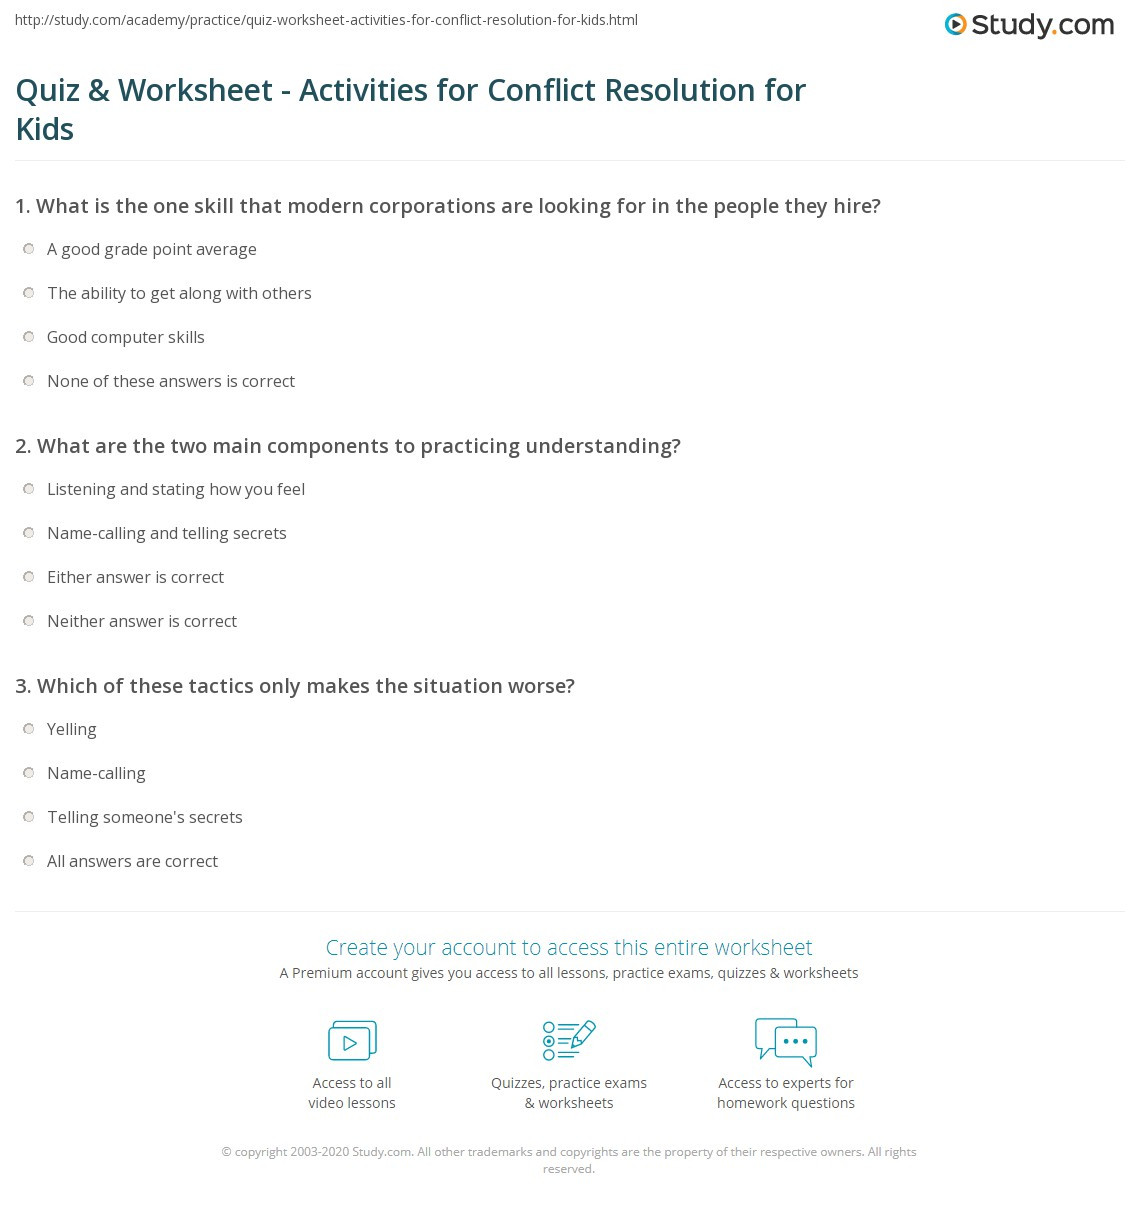 Conflict Worksheets for Middle School Quiz & Worksheet Activities for Conflict Resolution for